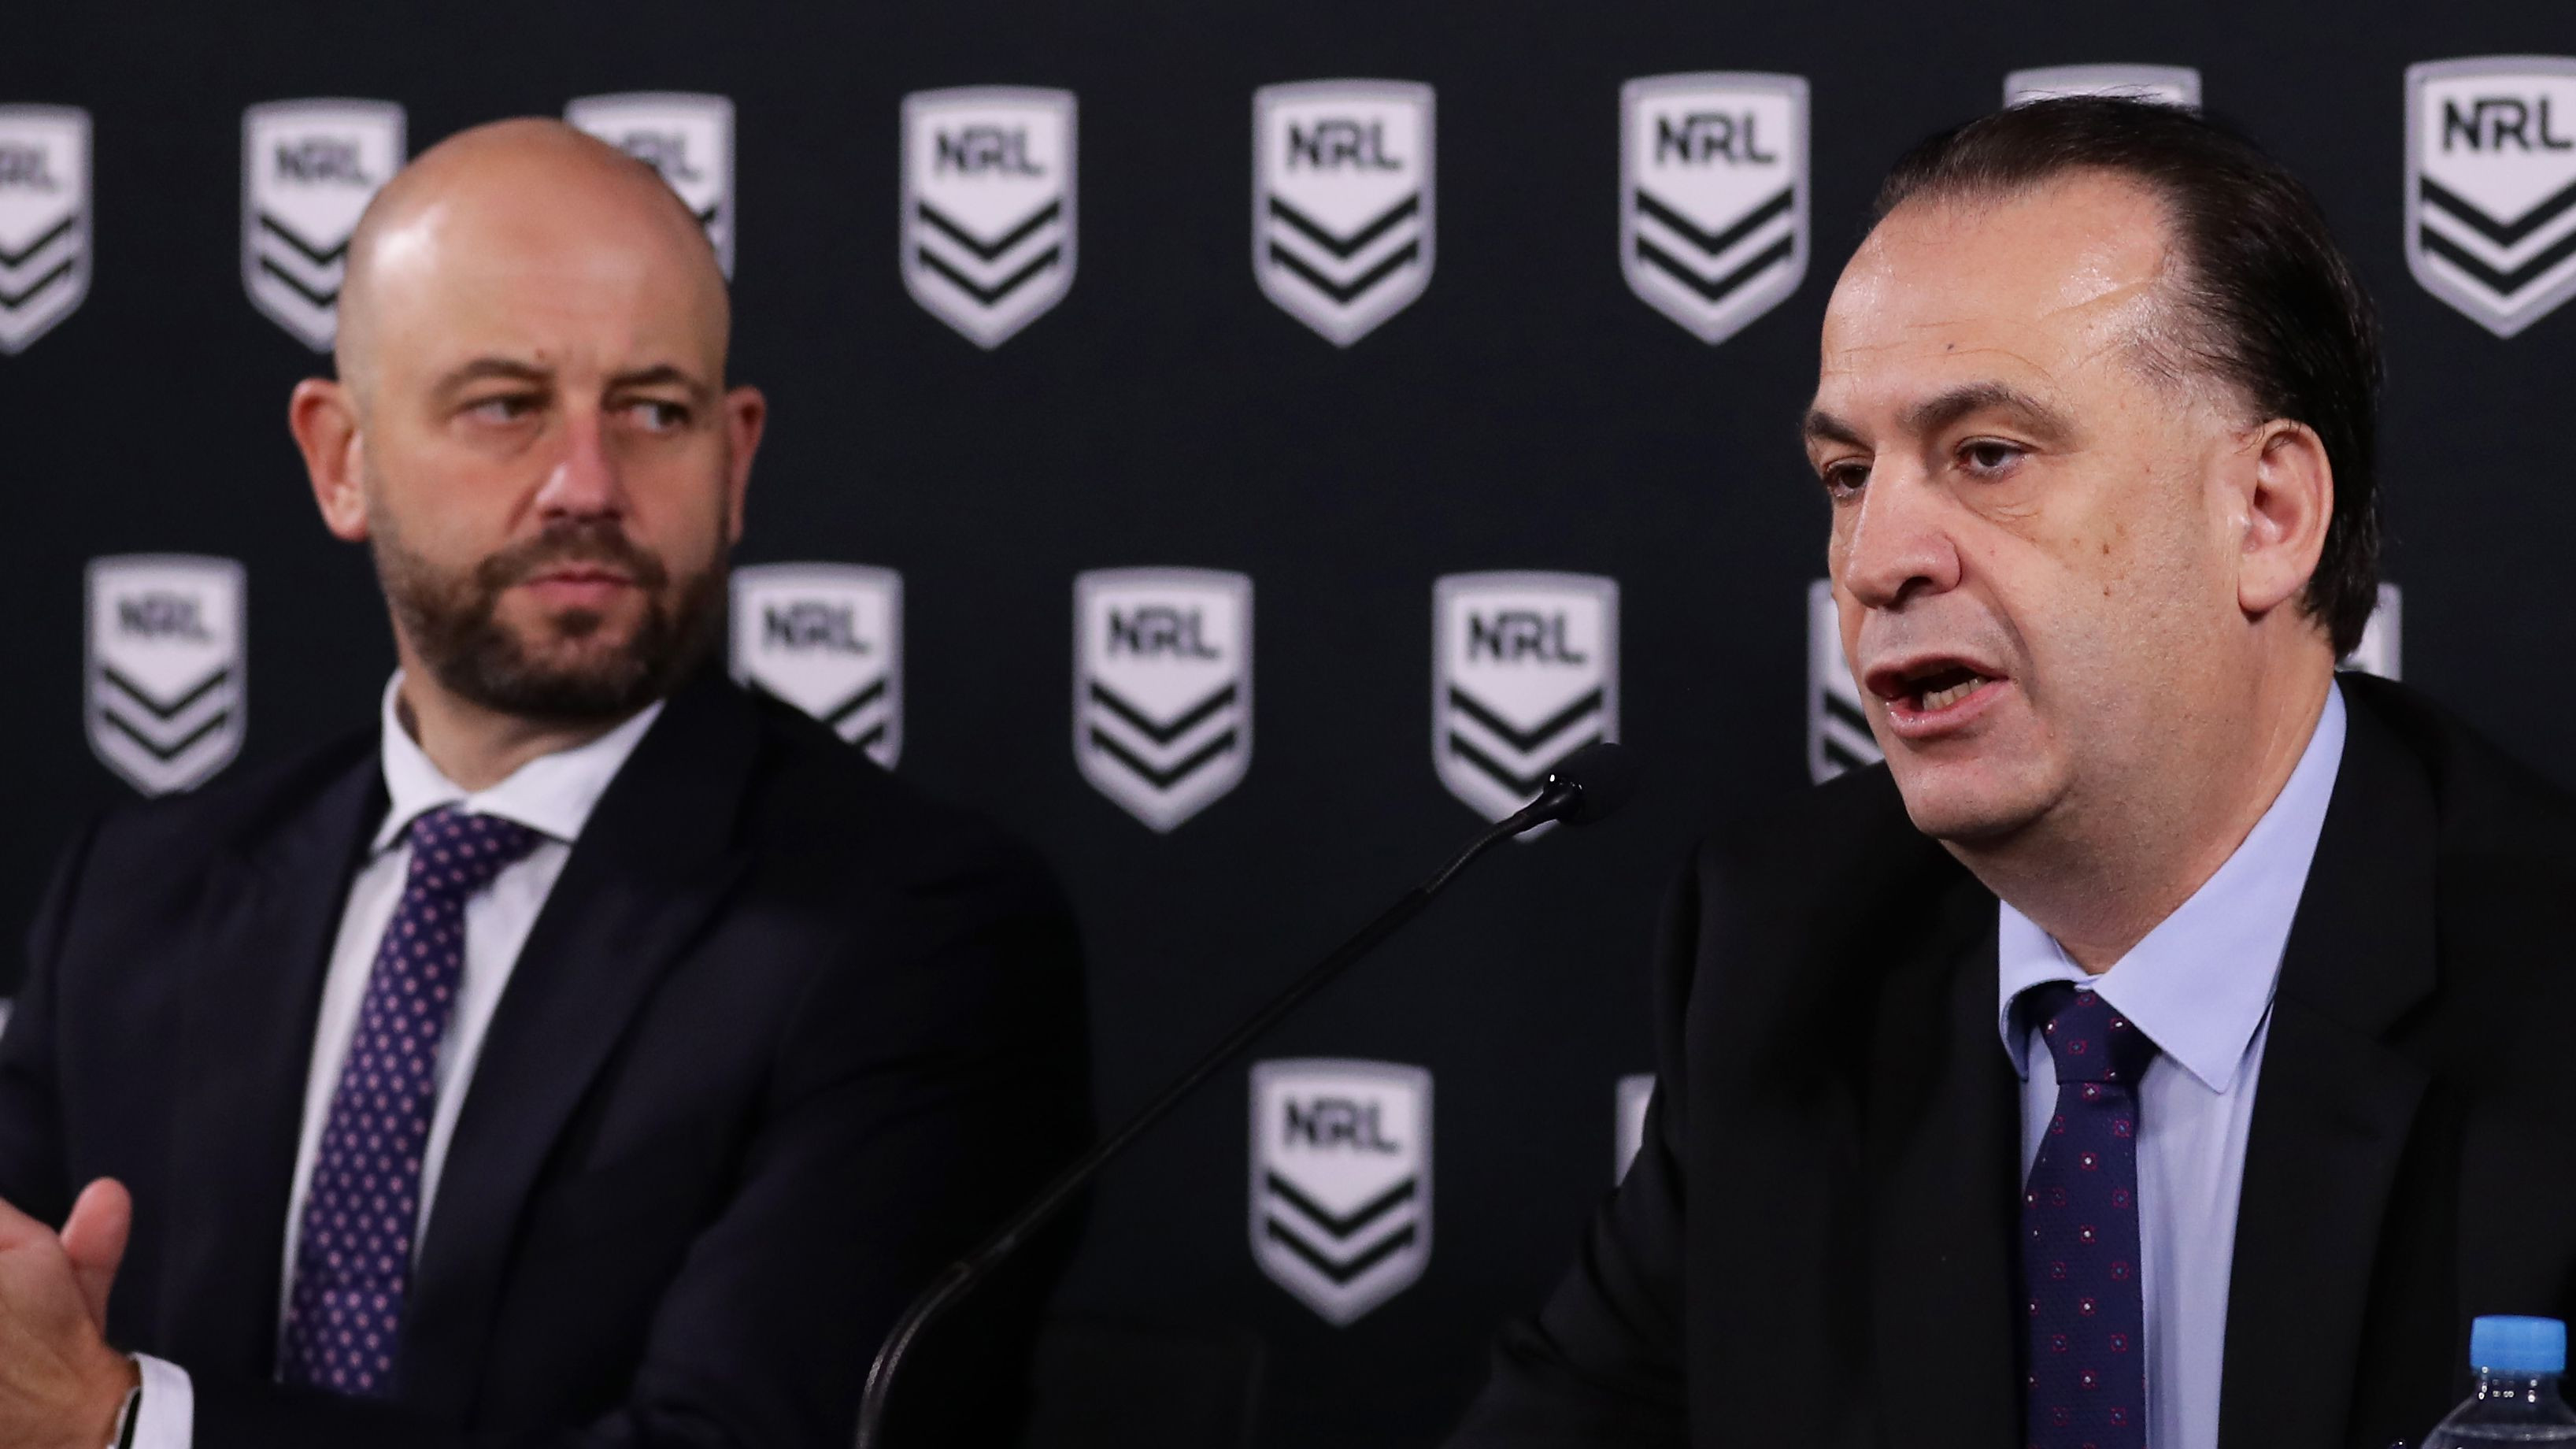 Players will take percentage pay cut amid rugby league virus shutdown, says NRL